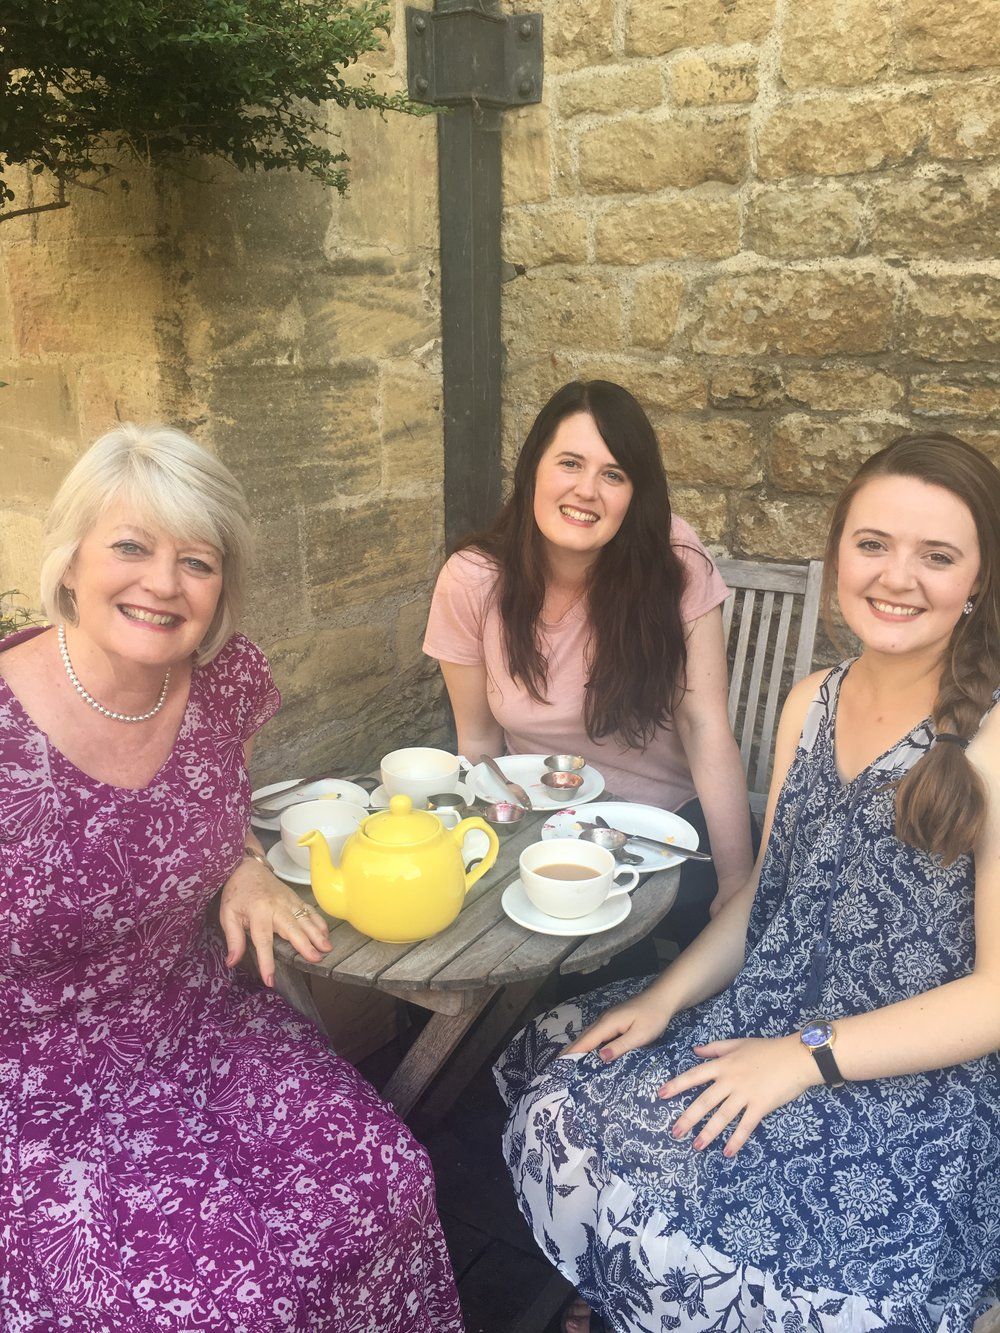 Girl's club: our last time of sharing life secrets and friendship together in Oxford before I got married. This is a life-long tradition with us girls. It has held us through many hard times.